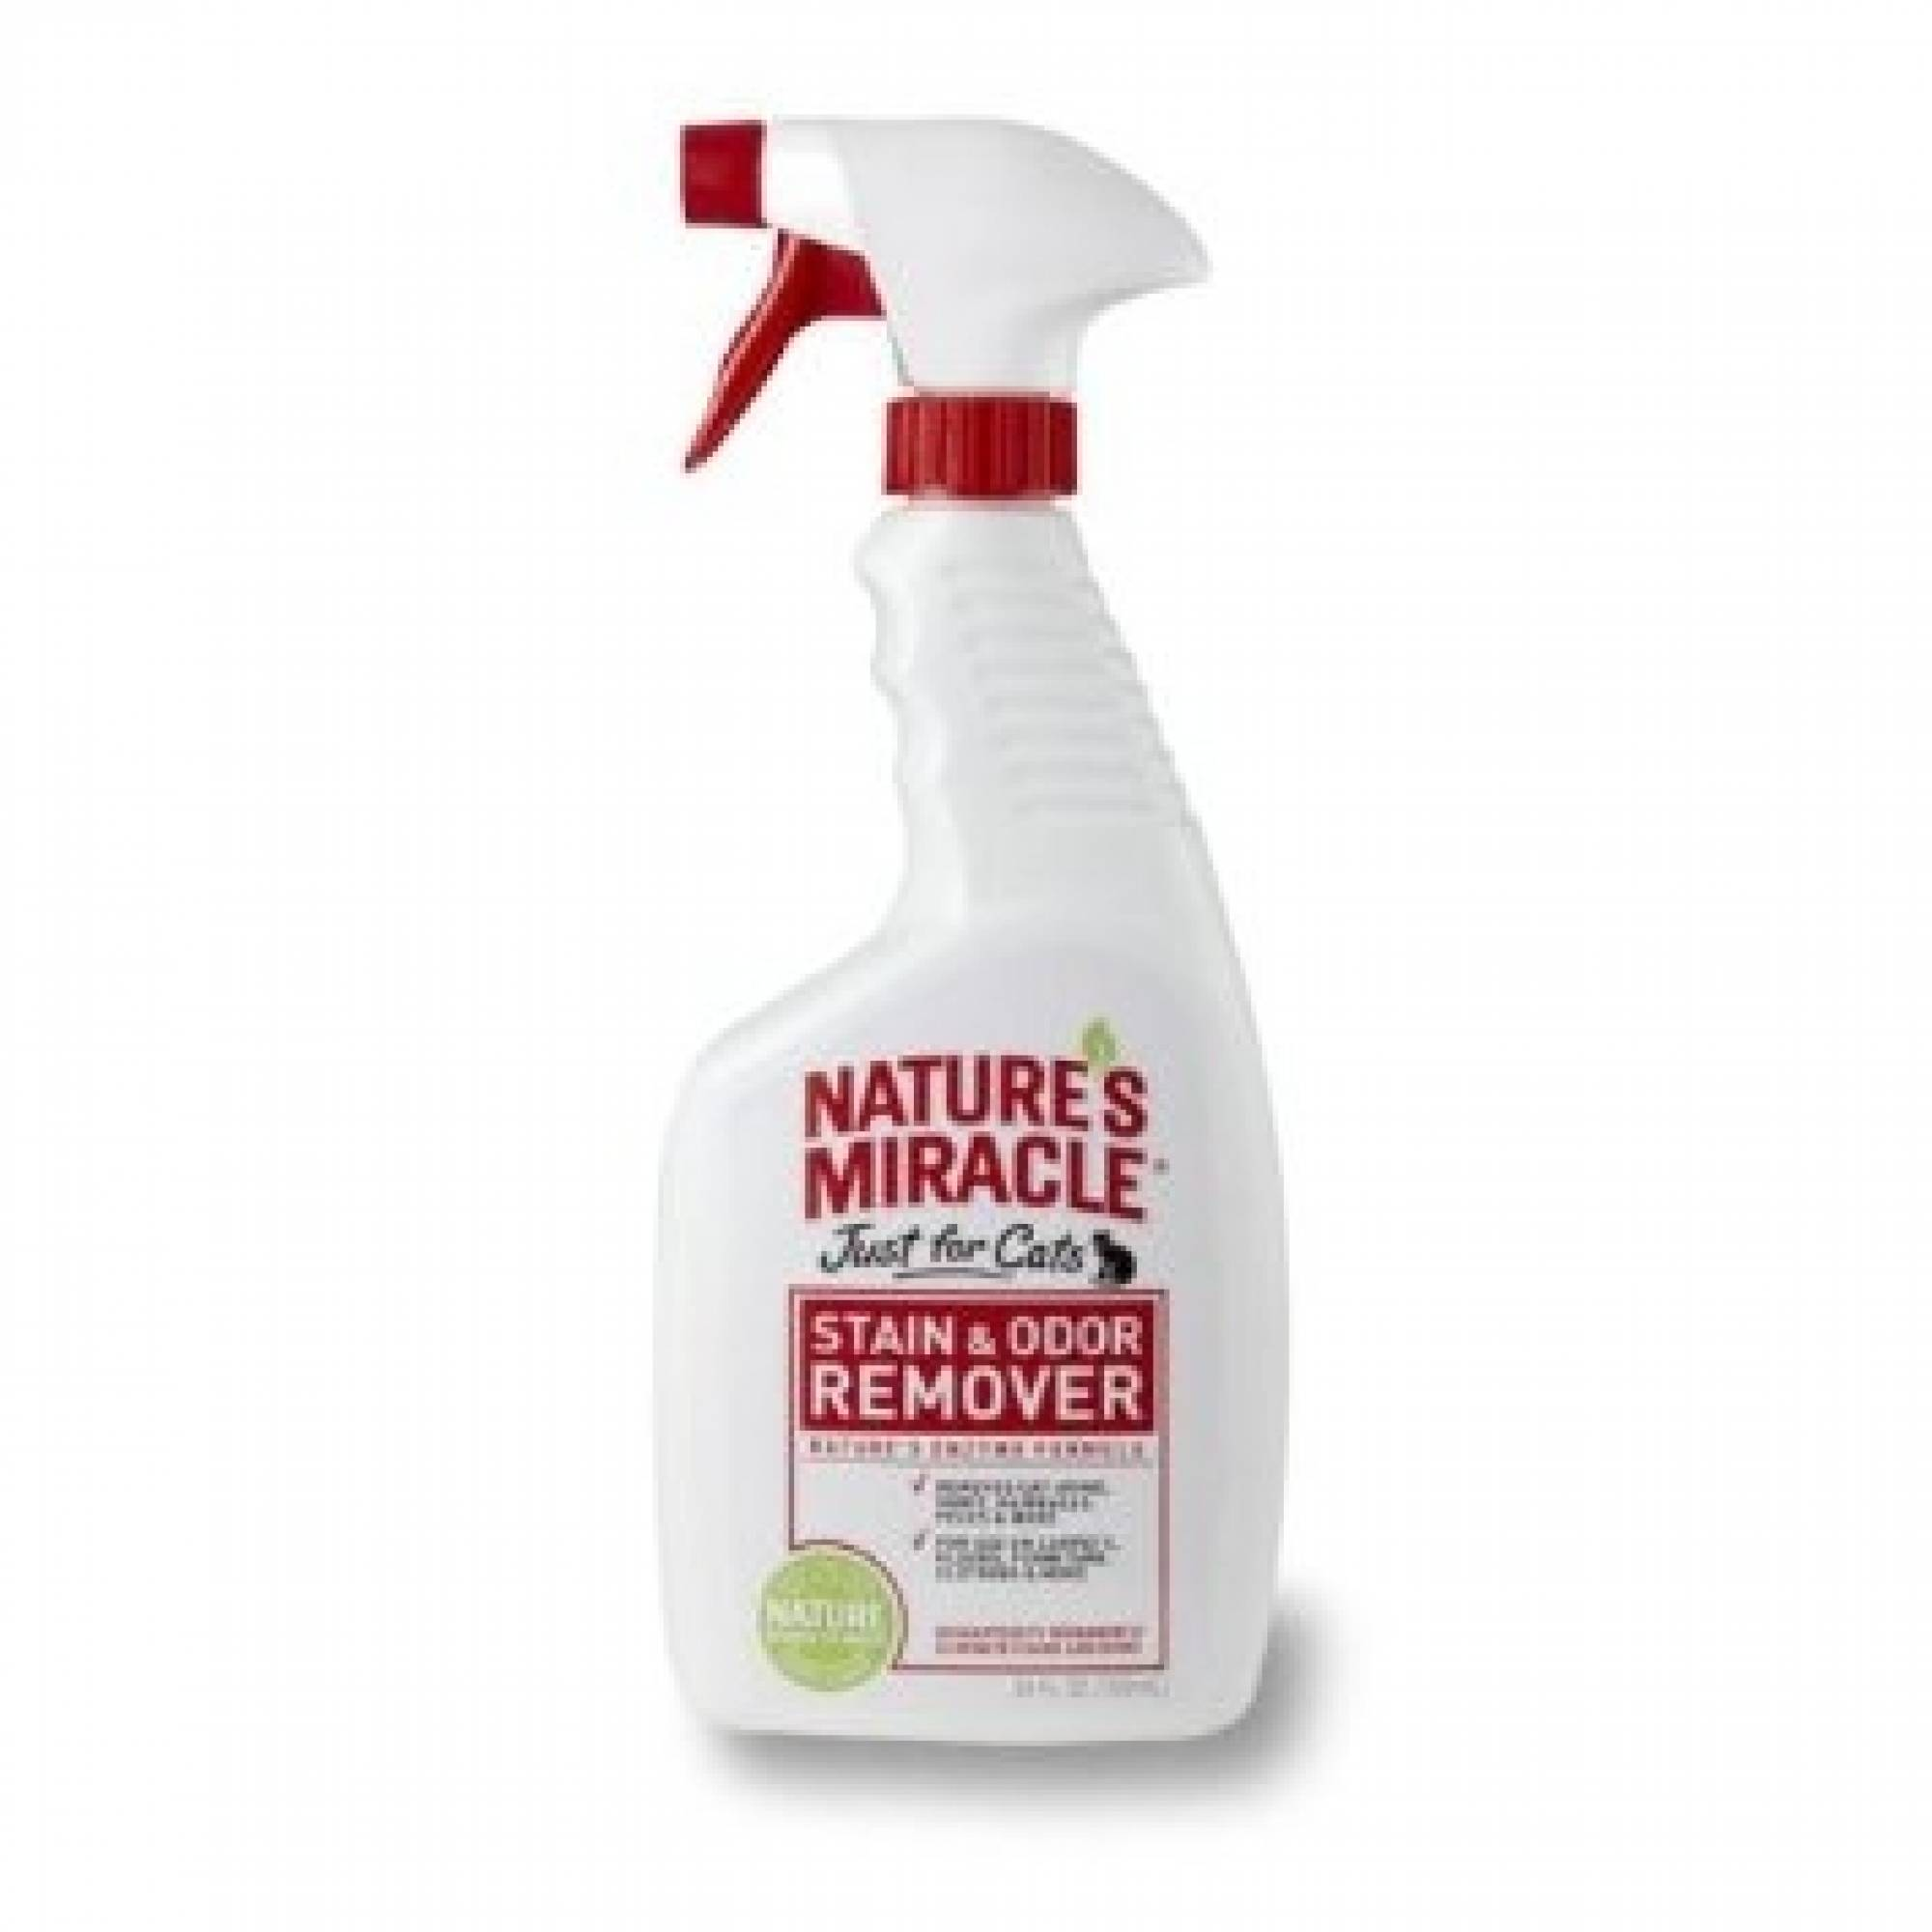 Natures Miracle Stain and Odour Remover Just for Cats spray 24oz